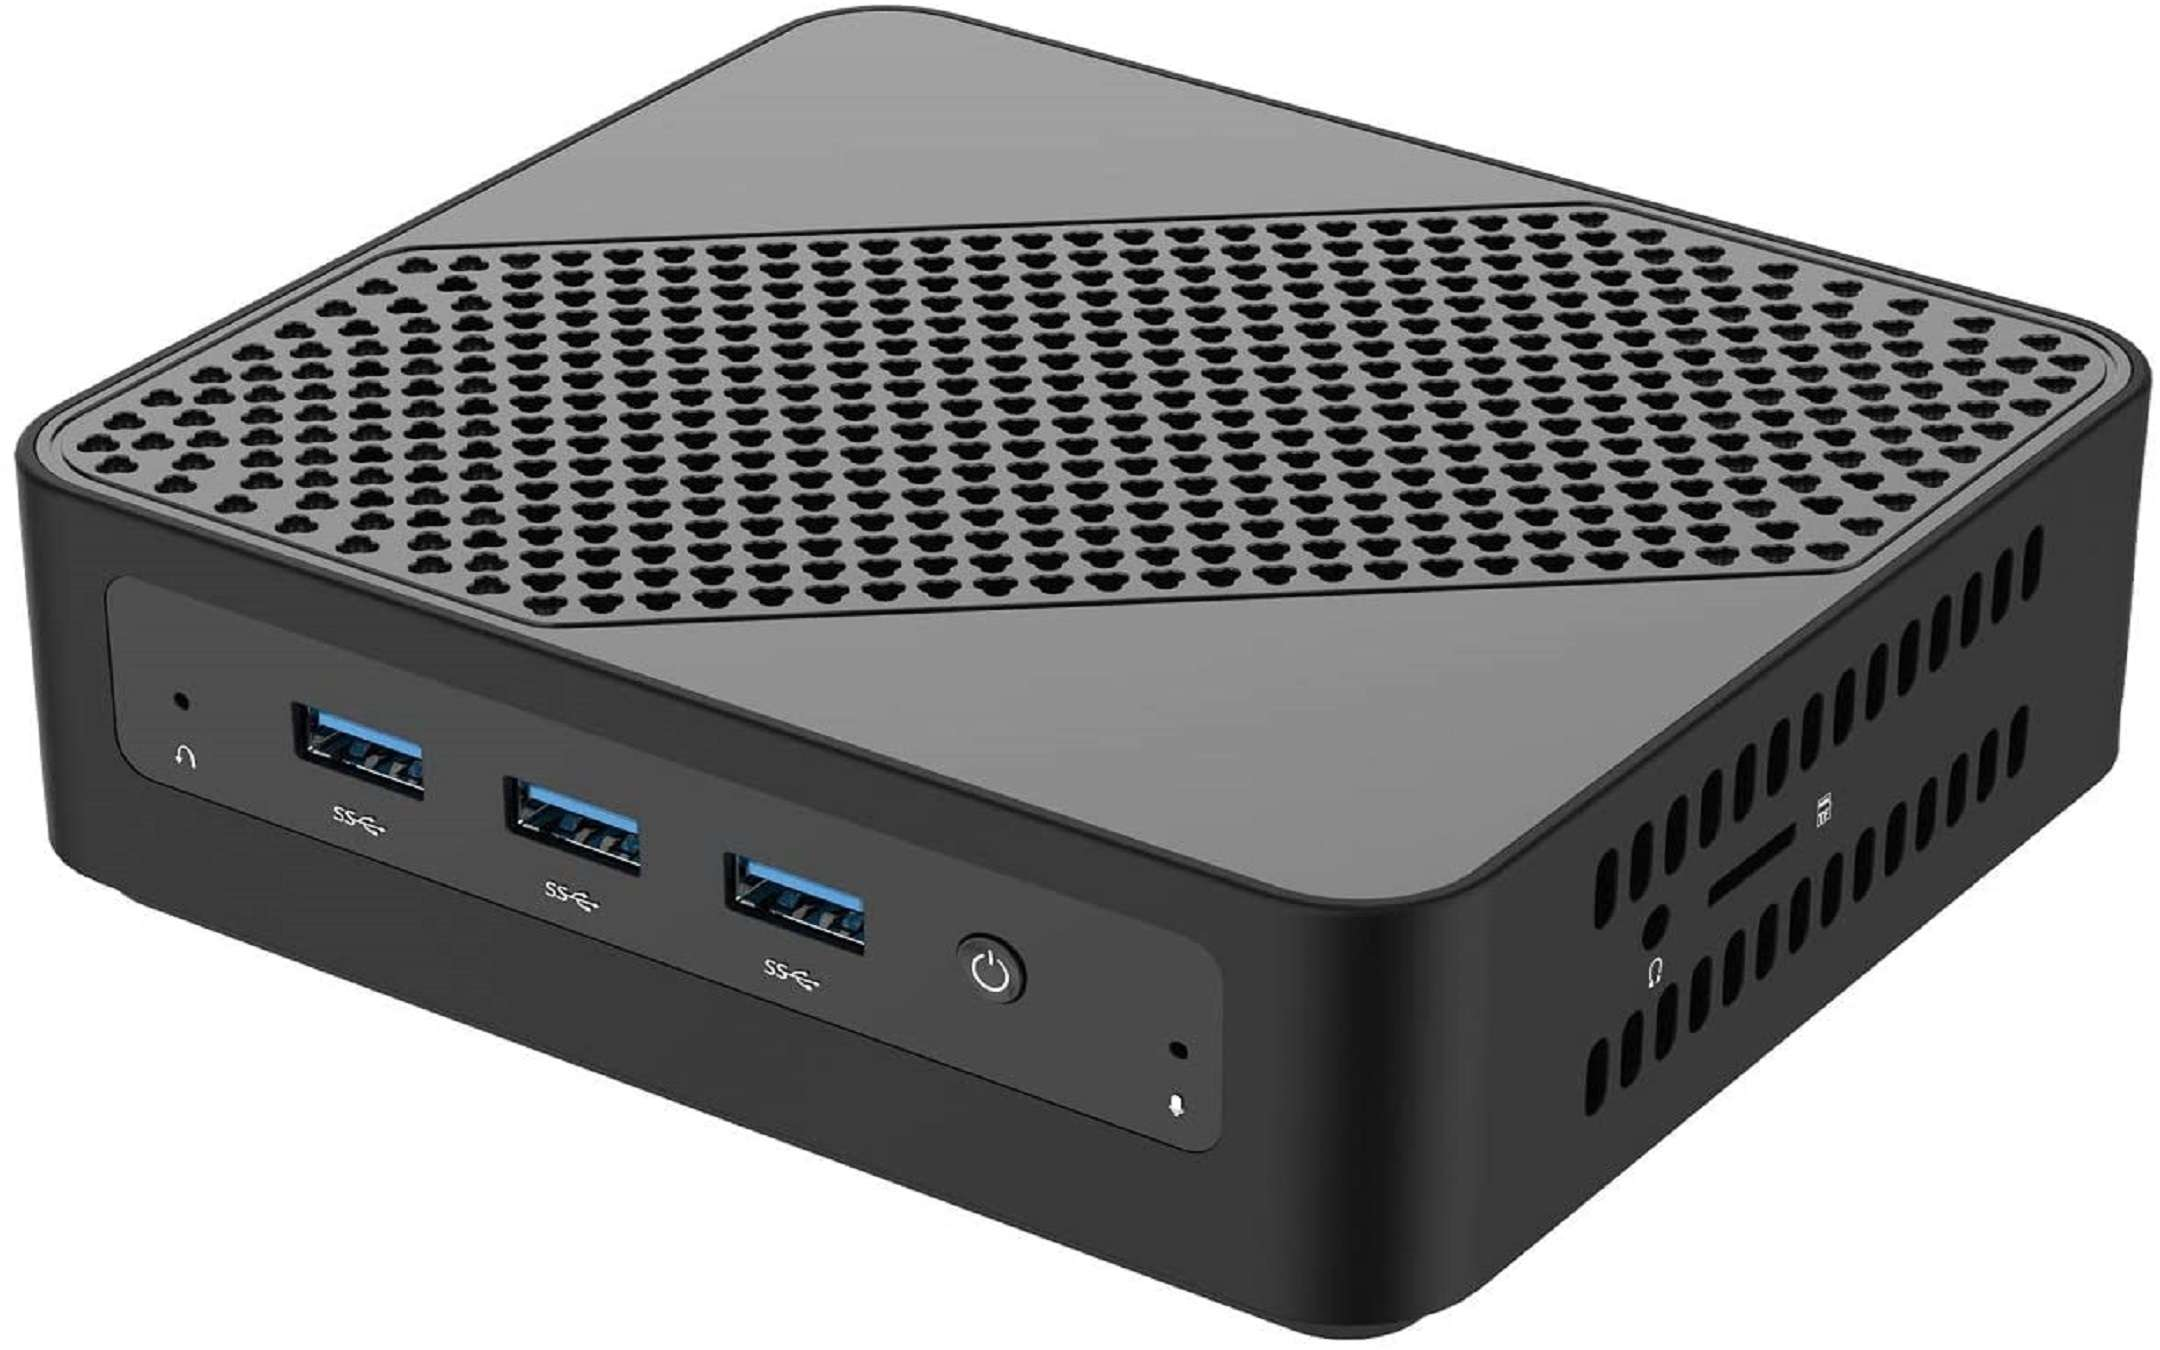 Mini PC Minis Forum: Intel i5 SoC and 8GB of RAM on Amazon!